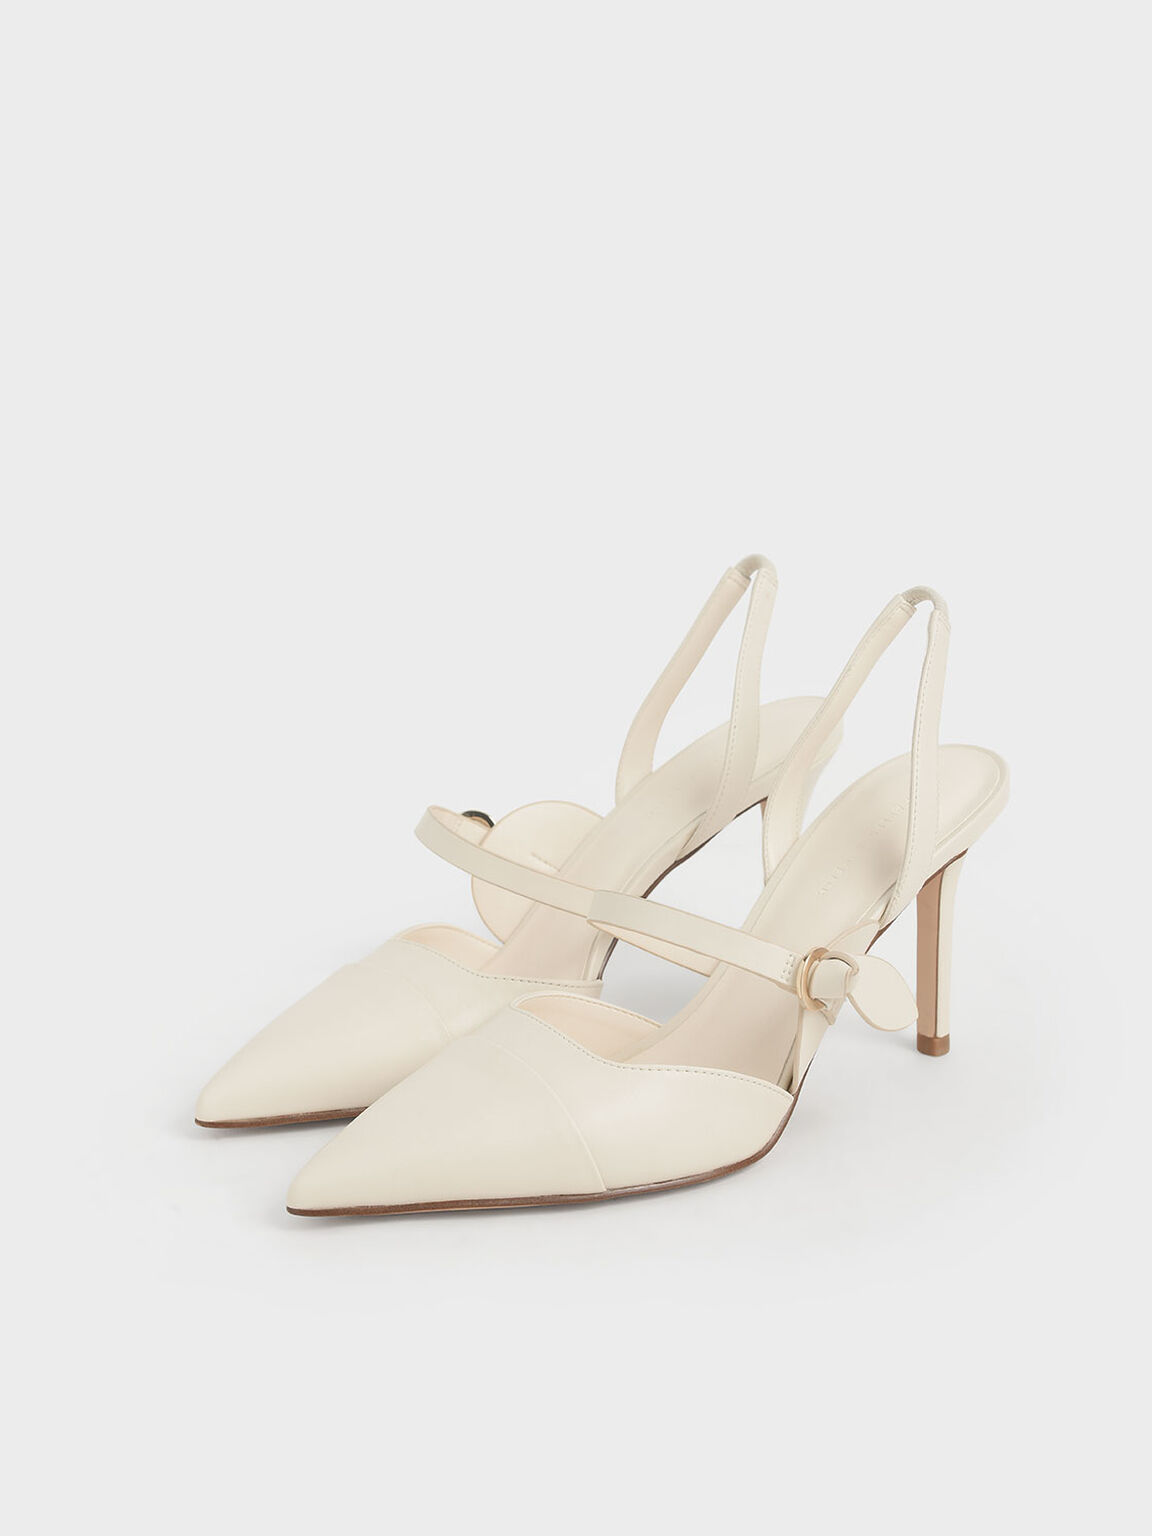 Mary Jane Strap Slingback Pumps, Cream, hi-res